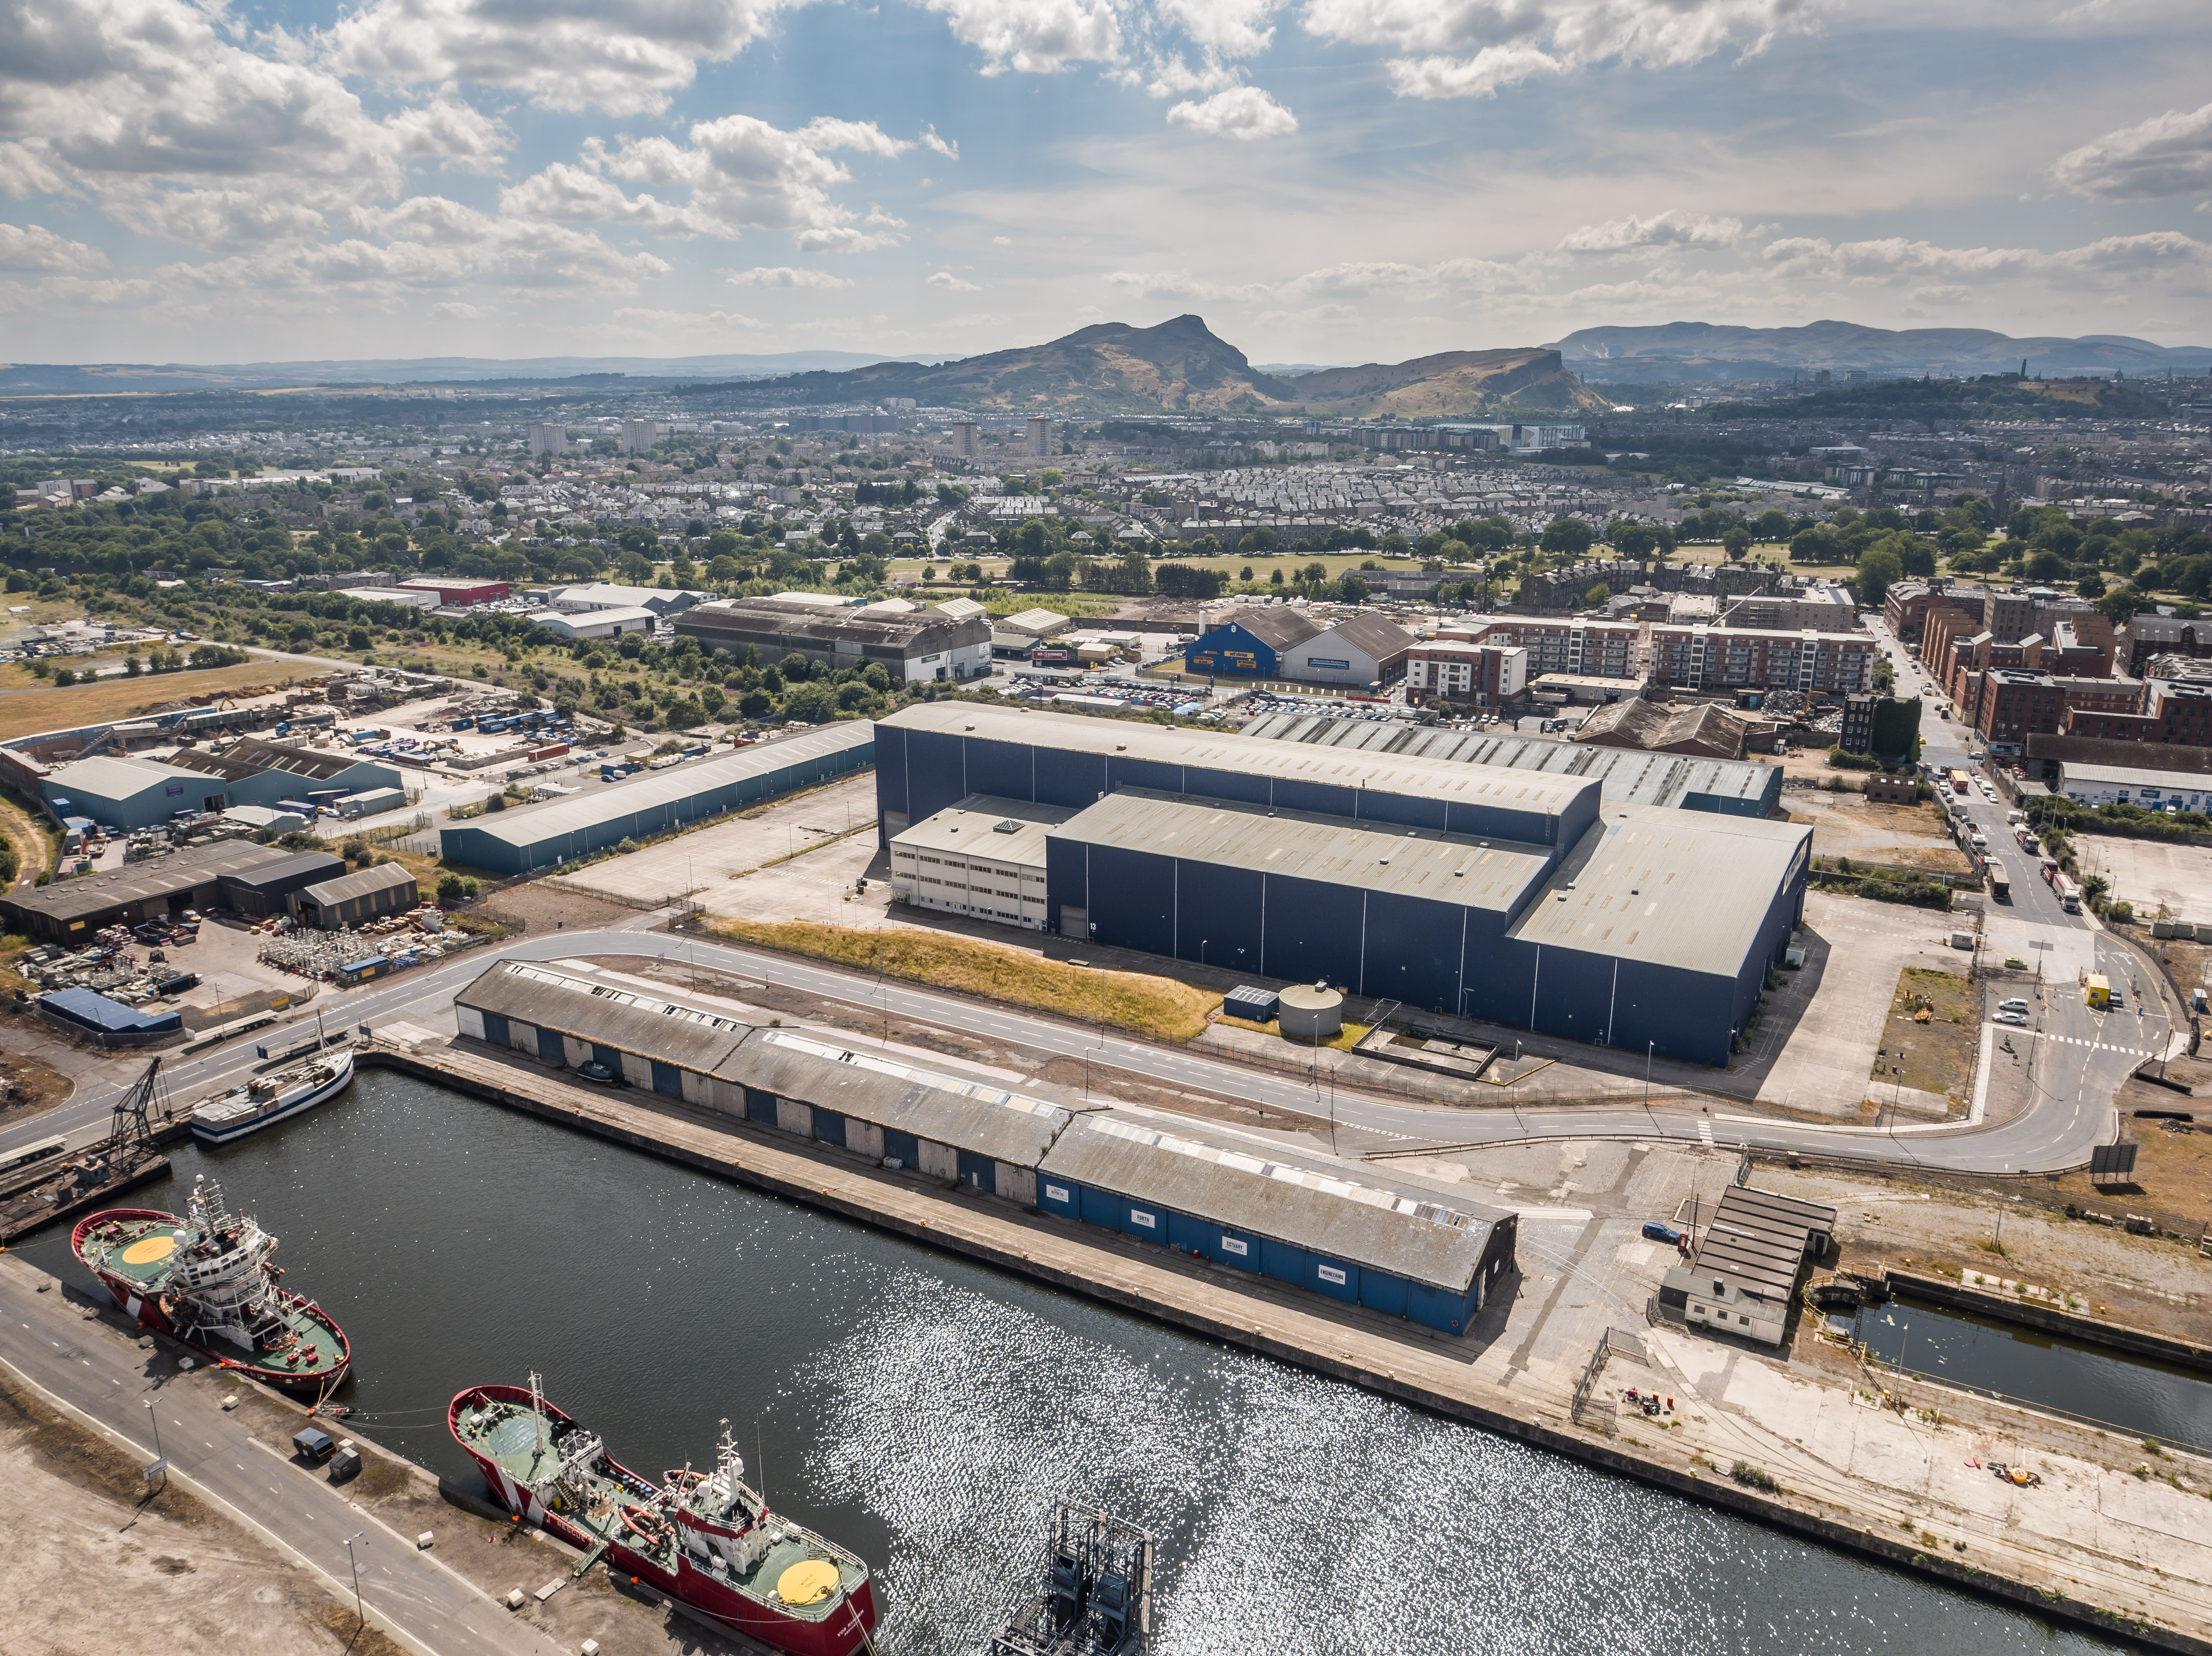 Media release: Screen Scotland seeks operator for major film and TV production facility at The Port of Leith, Edinburgh